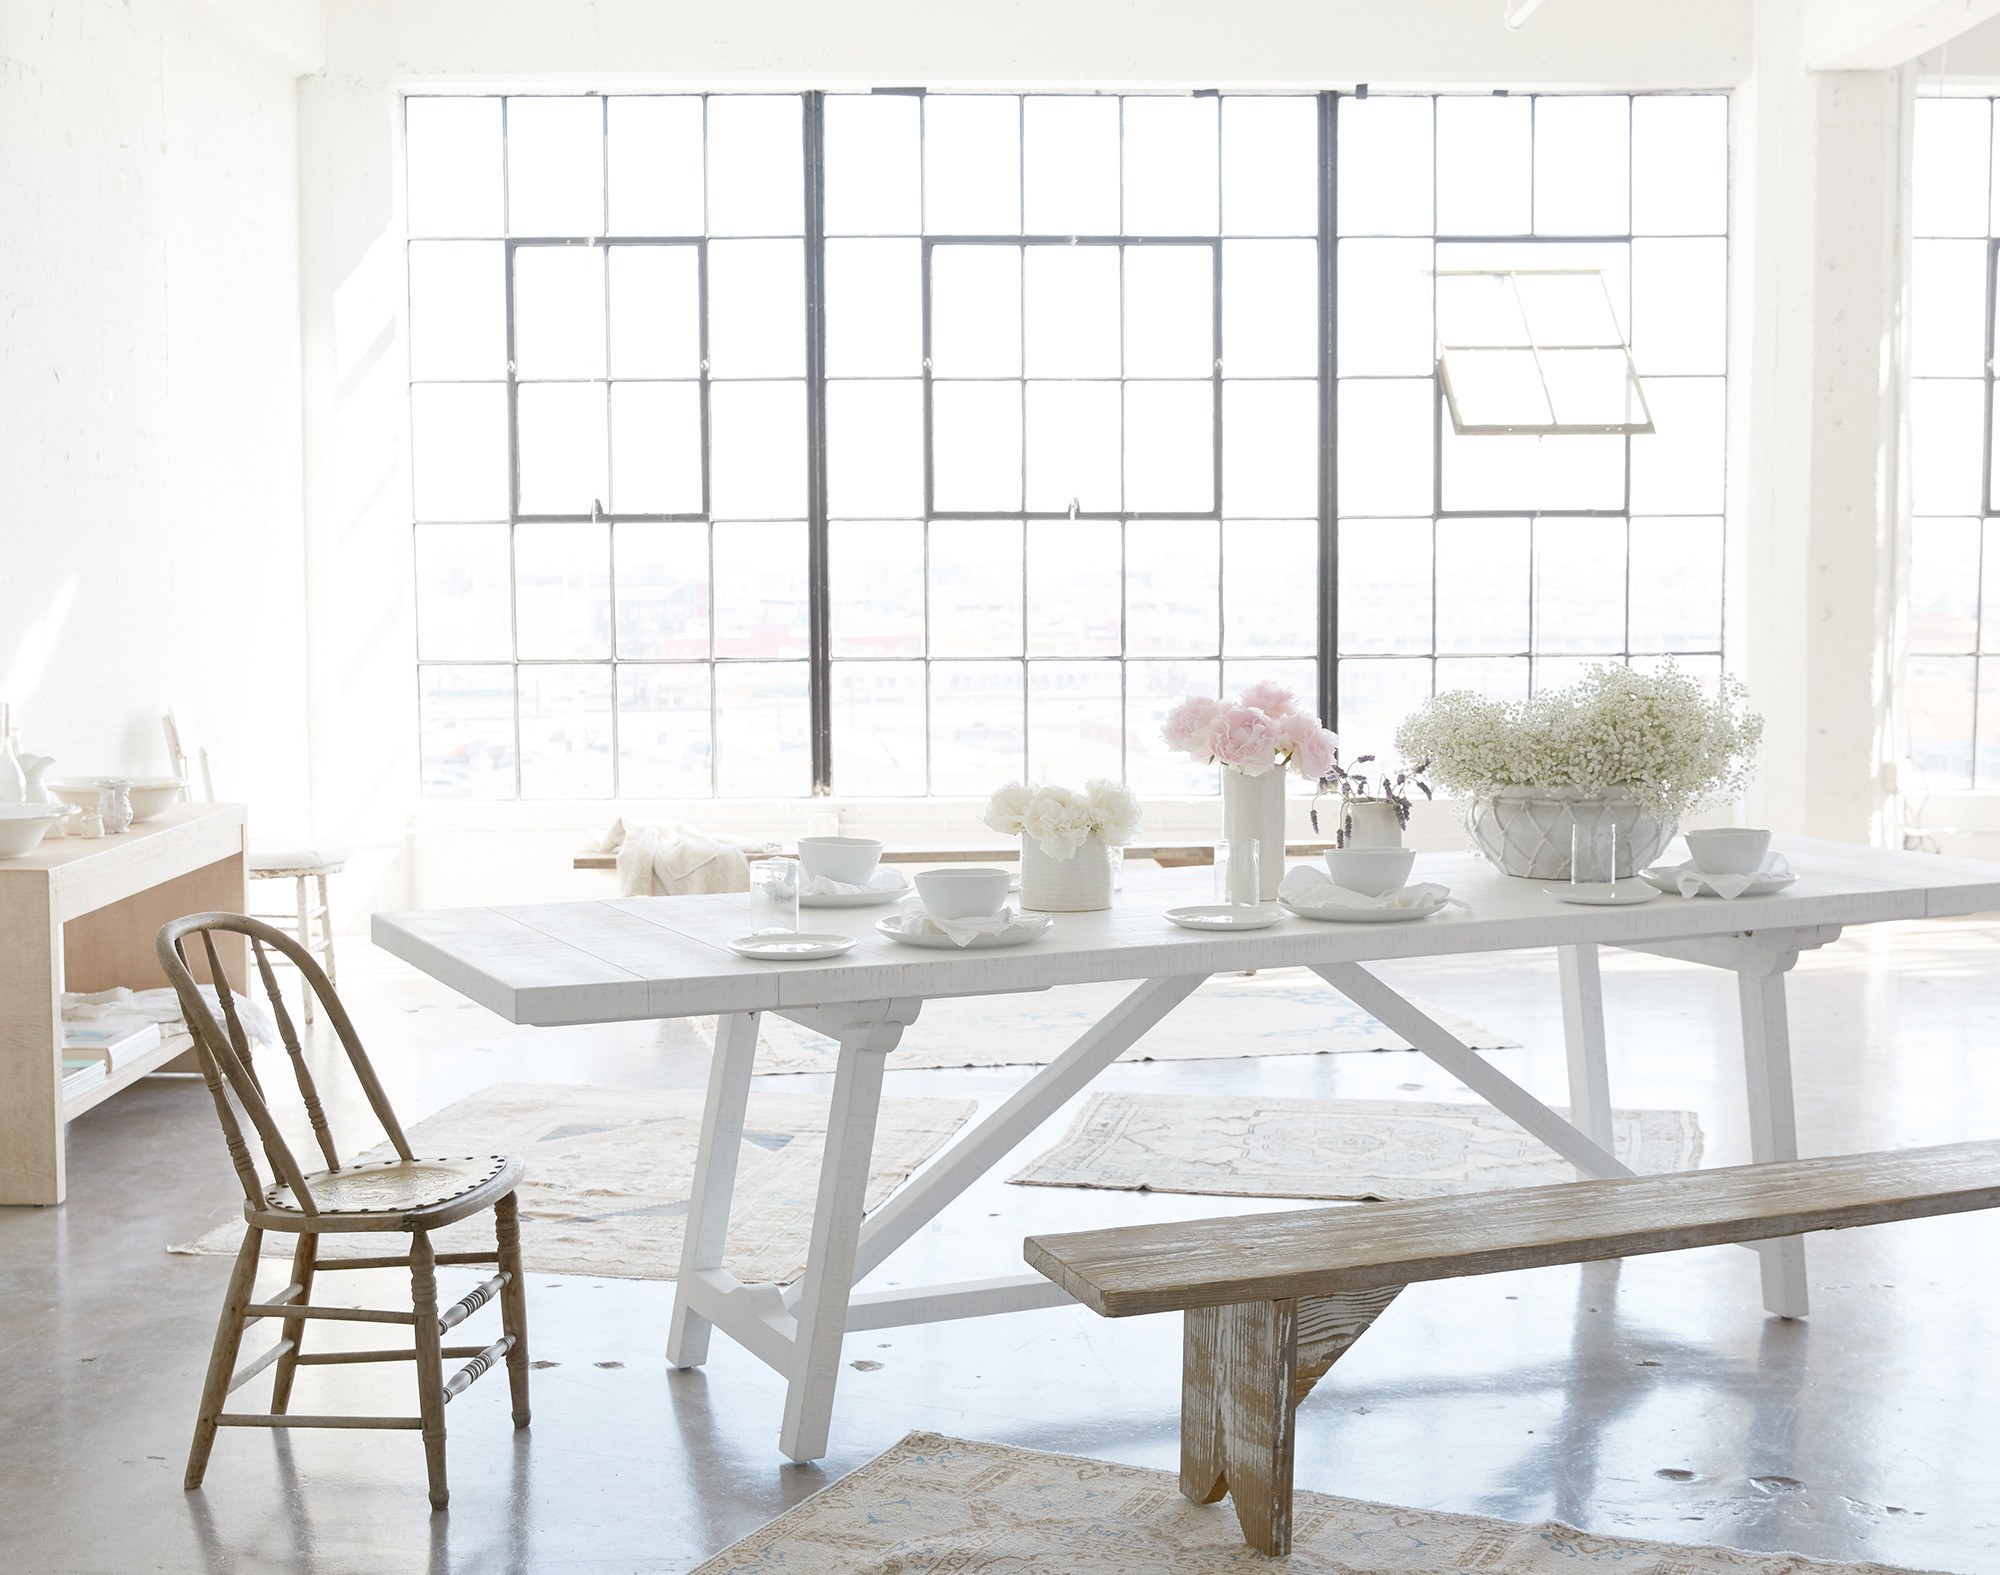 Shabby Chic Decor finds await you in this inspiring lineup of interior design inspiration. #shabbychic #interiordesignideas #decoratingideas #rachelashwell #diningroom